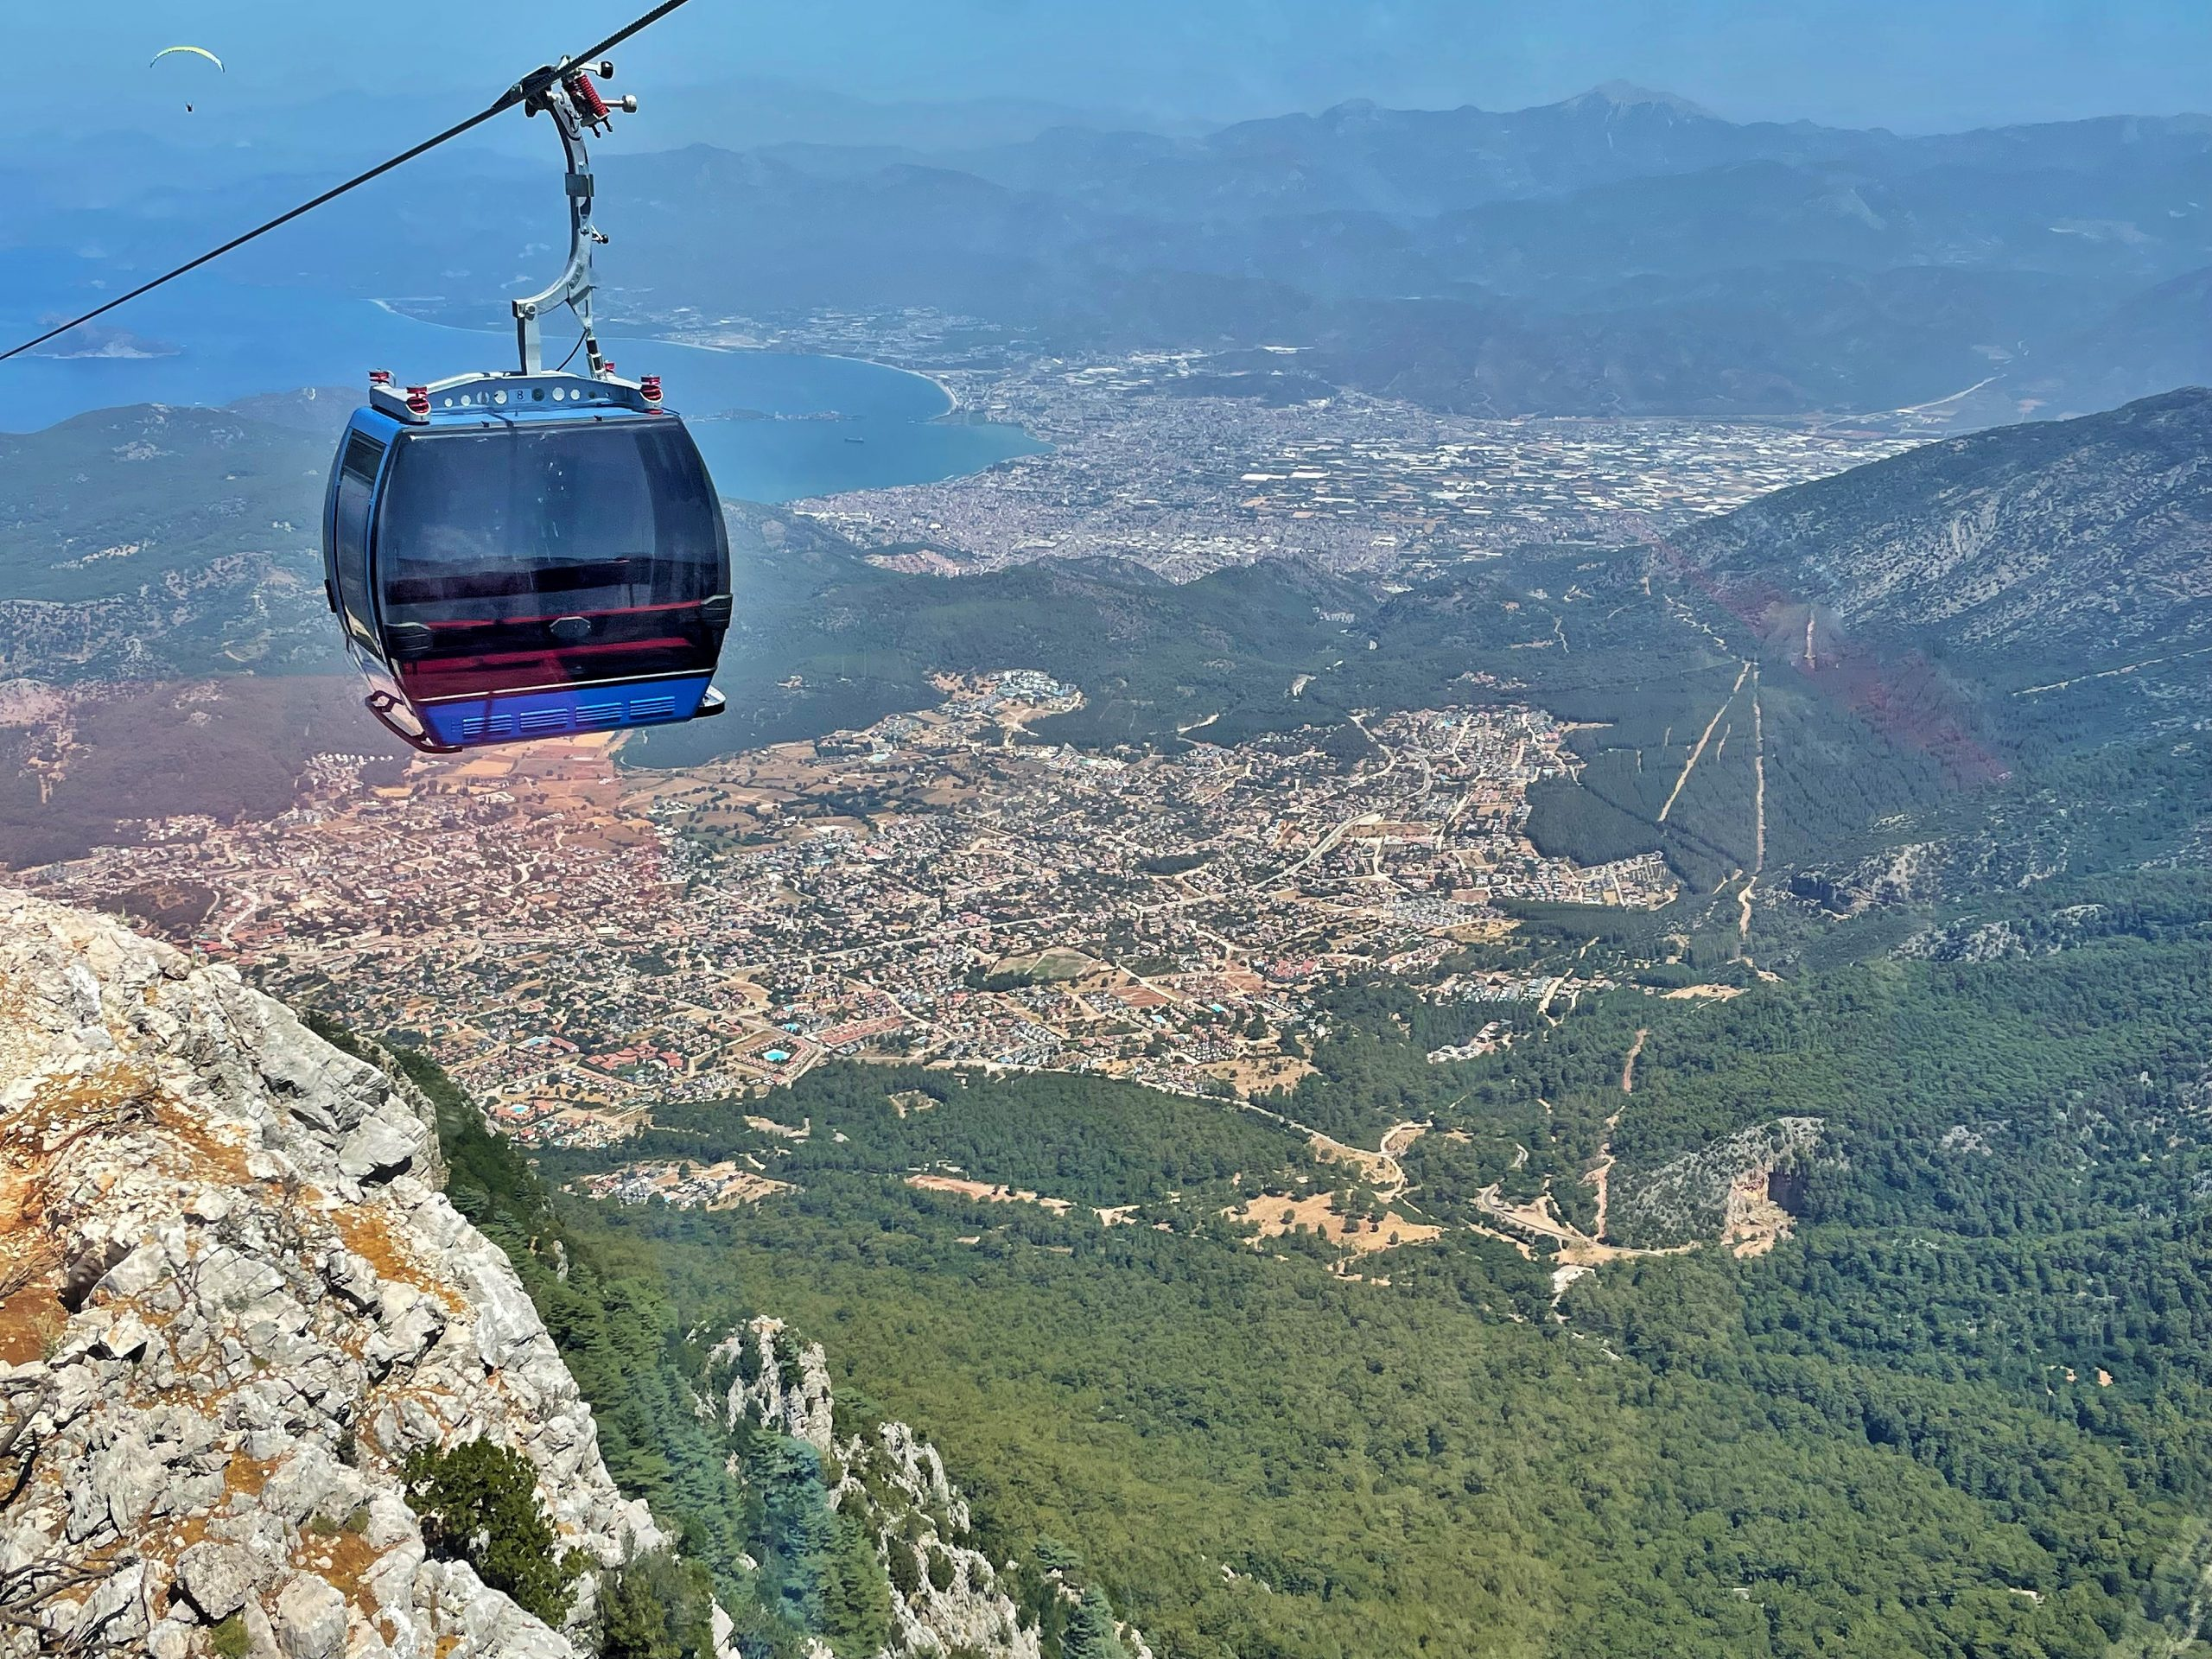 An image to show the view from the new cable car to the top of Babadag.